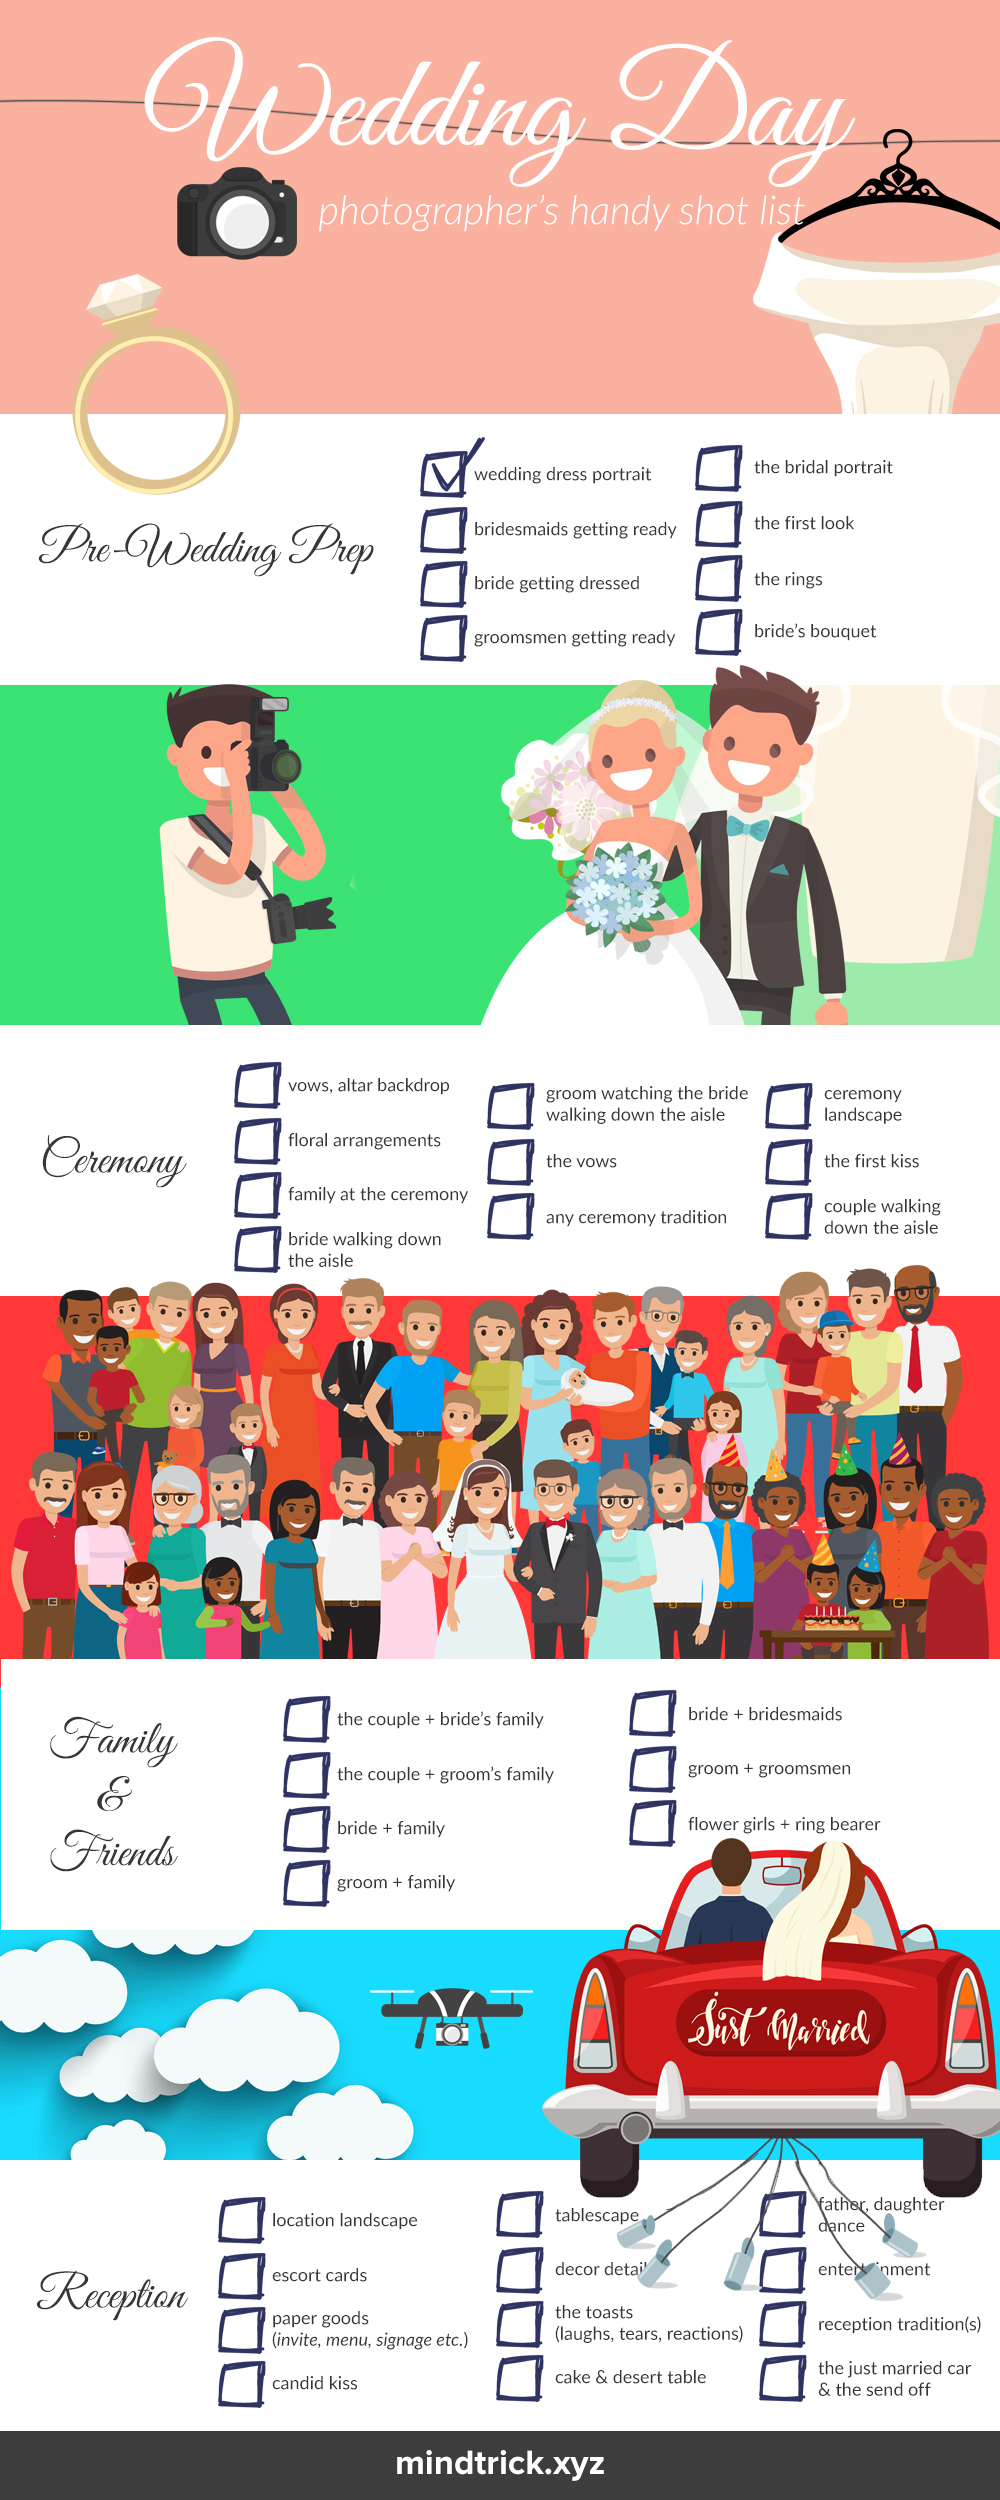 wedding-shot-list-infographic